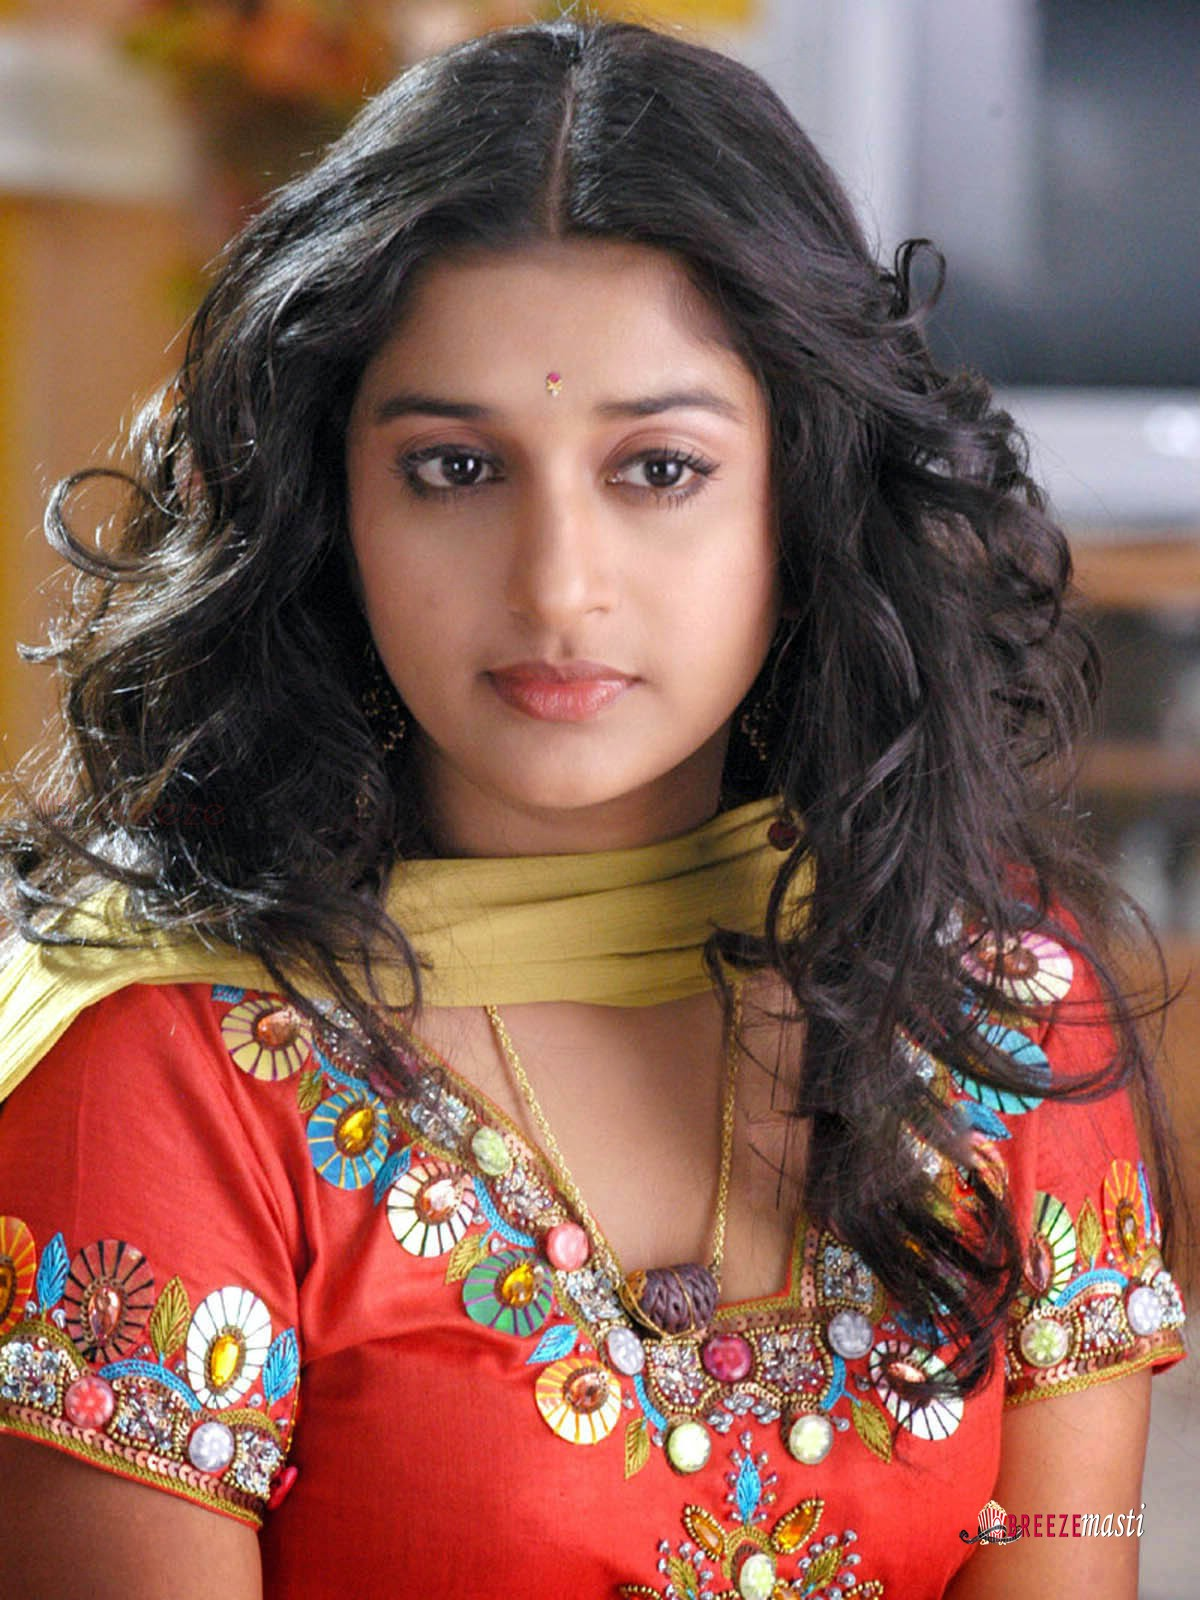 Photos Meera Jasmine Hd Images Pictures Pics And Hd Wallpapers Gallery